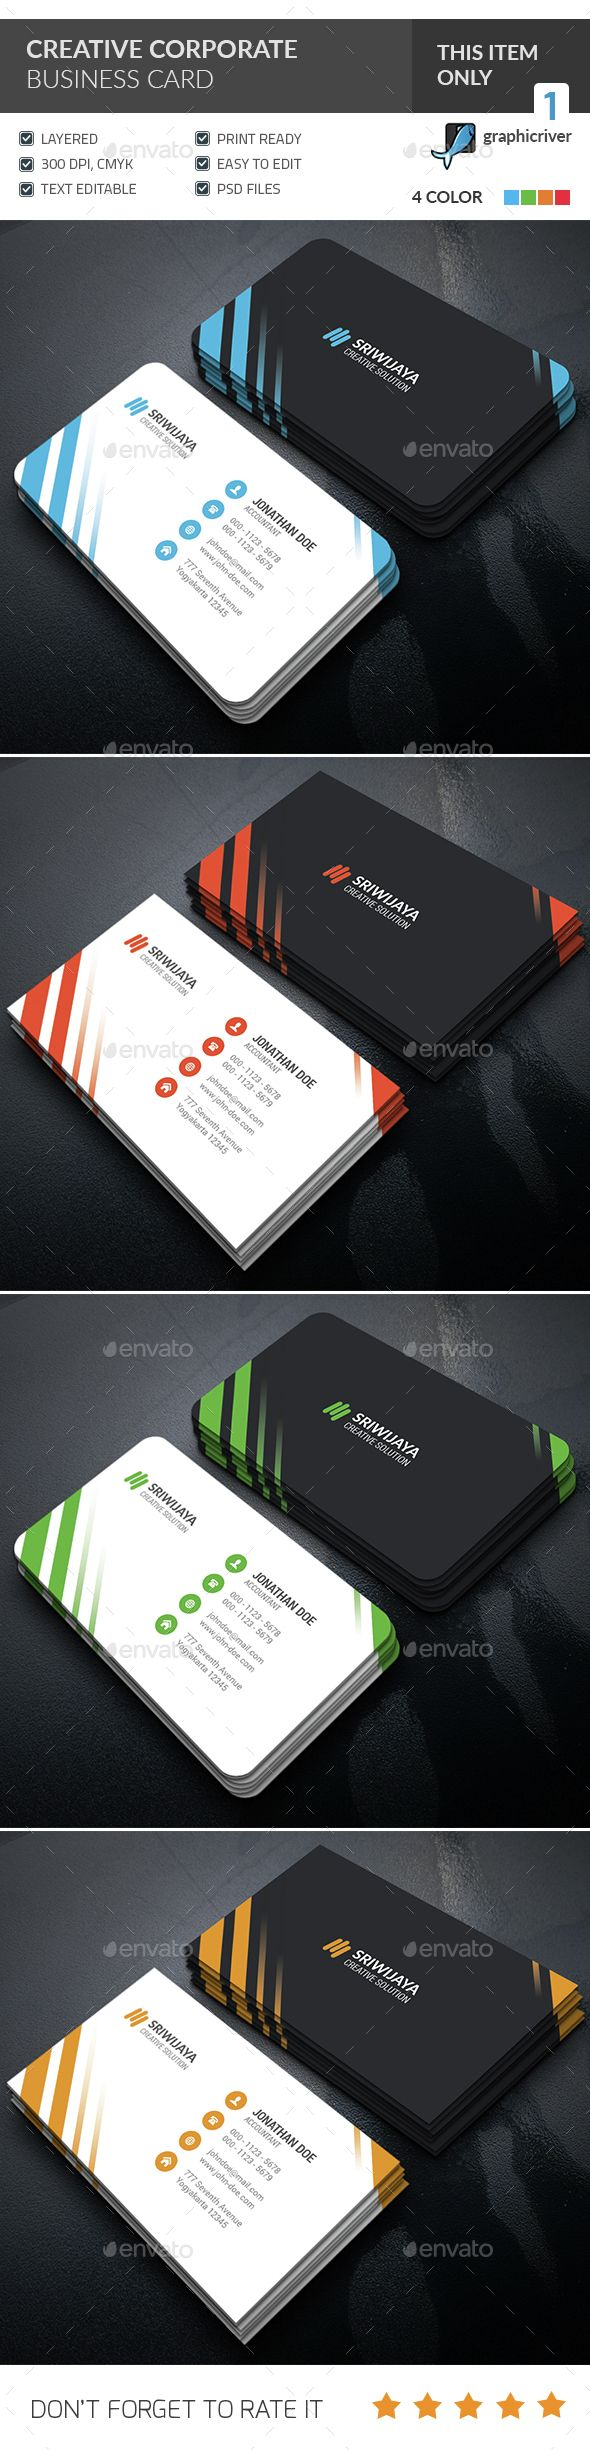 Creative Corporate Business Card Template PSD #design Download: http://graphicriver.net/item/creative-corporate-business-card-/14520462?ref=ksioks